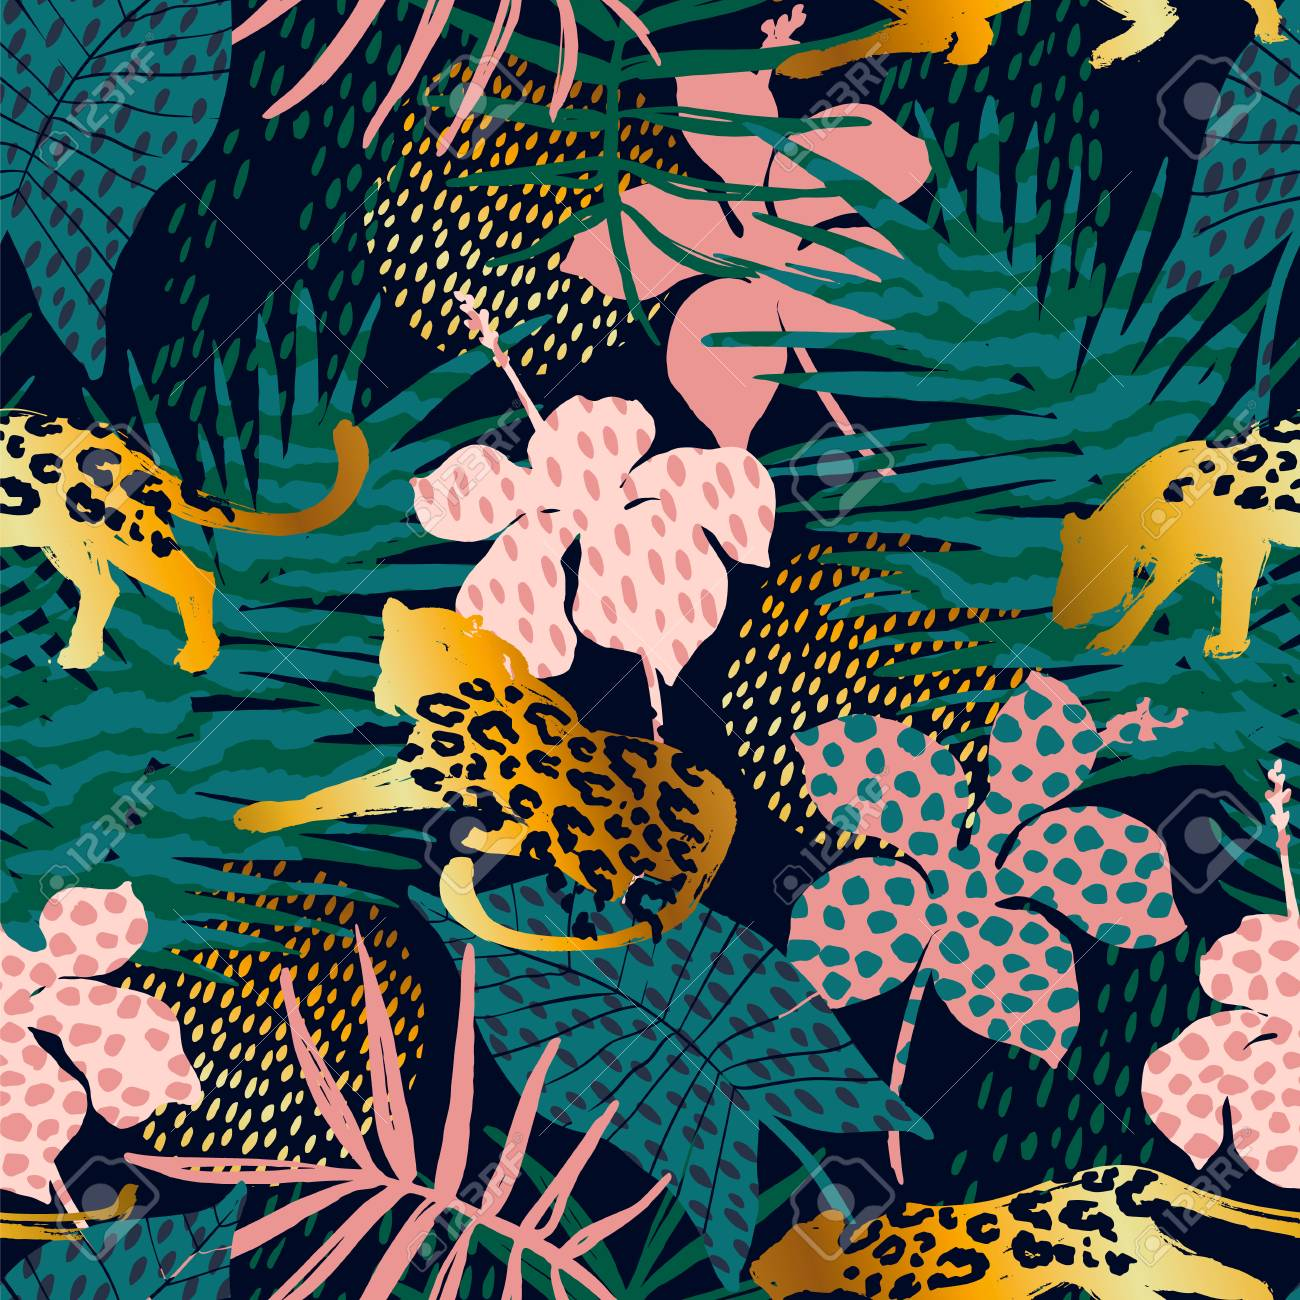 Trendy seamless exotic pattern with palm, animal prints and hand drawn textures. Vector illustration. Modern abstract design for paper, wallpaper, cover, fabric, Interior decor and other users. - 93748753